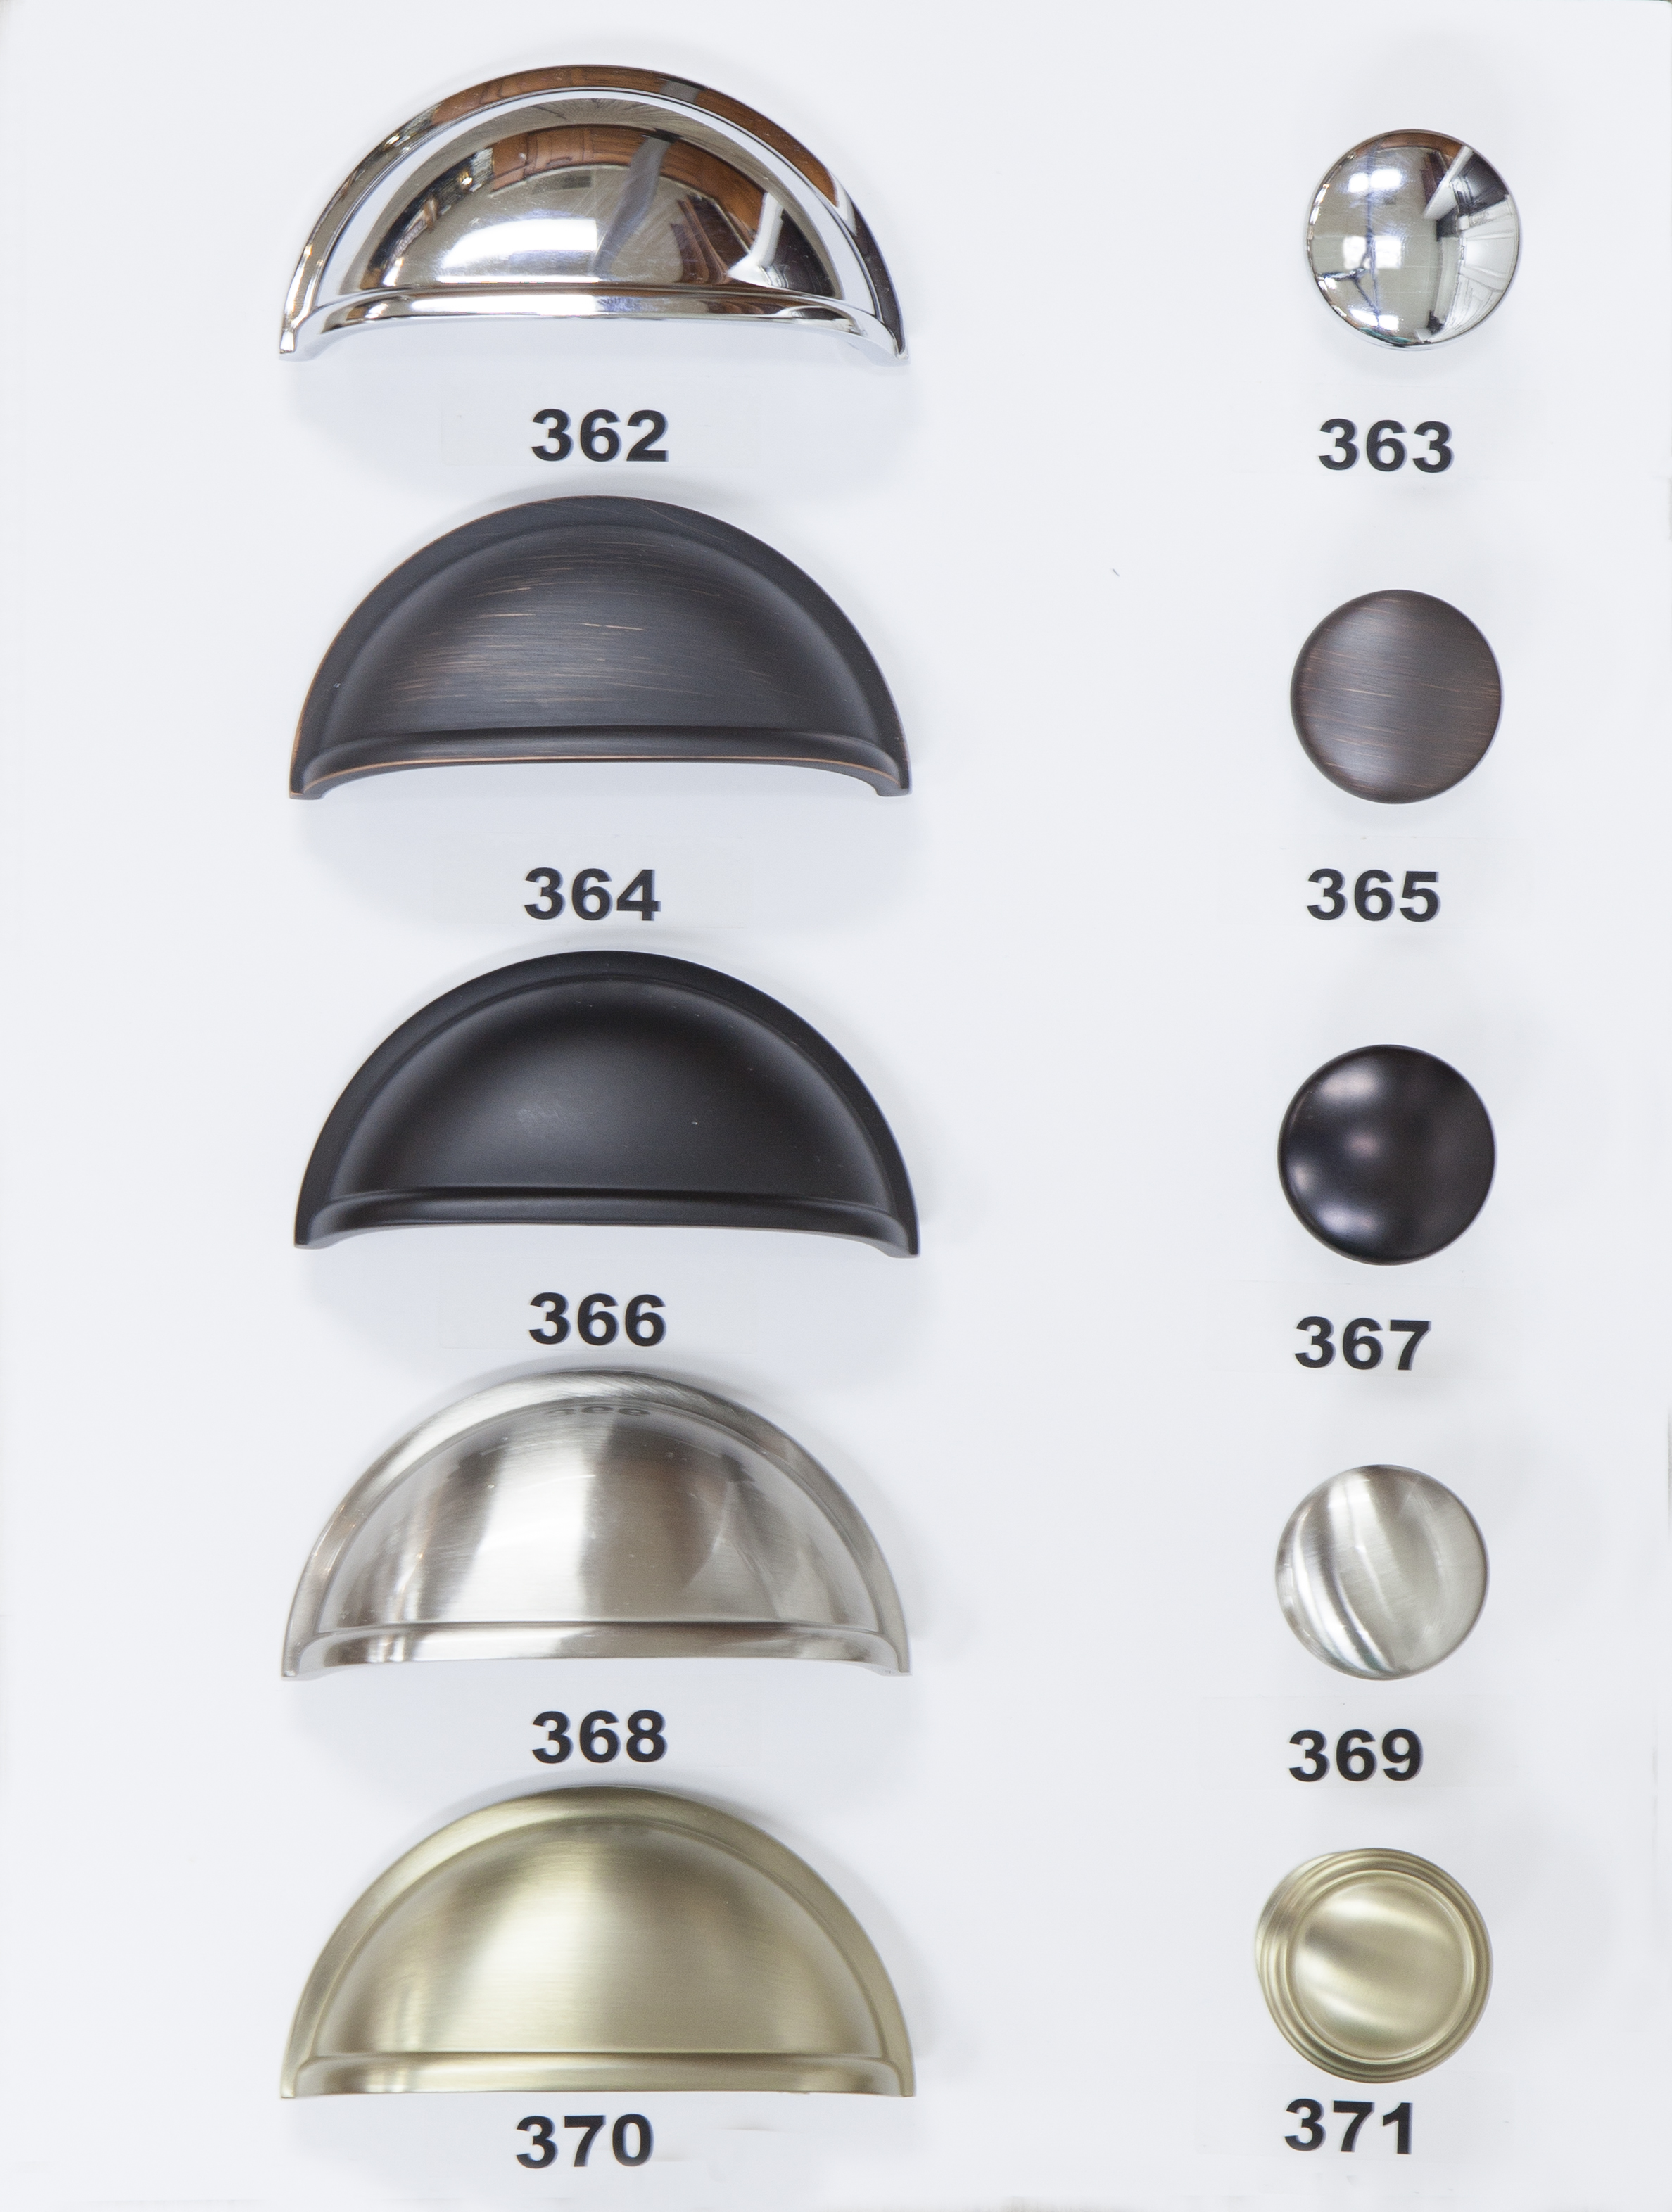 "#362 - 3"" Center - Polished Chrome  #363 - Knob - Polished Chrome  #364 - 3"" Center - Oil Rubbed Bronze  #365 - Knob - Oil Rubbed Bronze  #366 - 3"" Center - Flat Black  #367 - Knob - Flat Black  #368 - 3"" Center - Satin Nickel  #369 - Knob - Satin Nickel  #370 - 3"" Center - Golden Champagne  #371 - Knob - Golden Champagne"